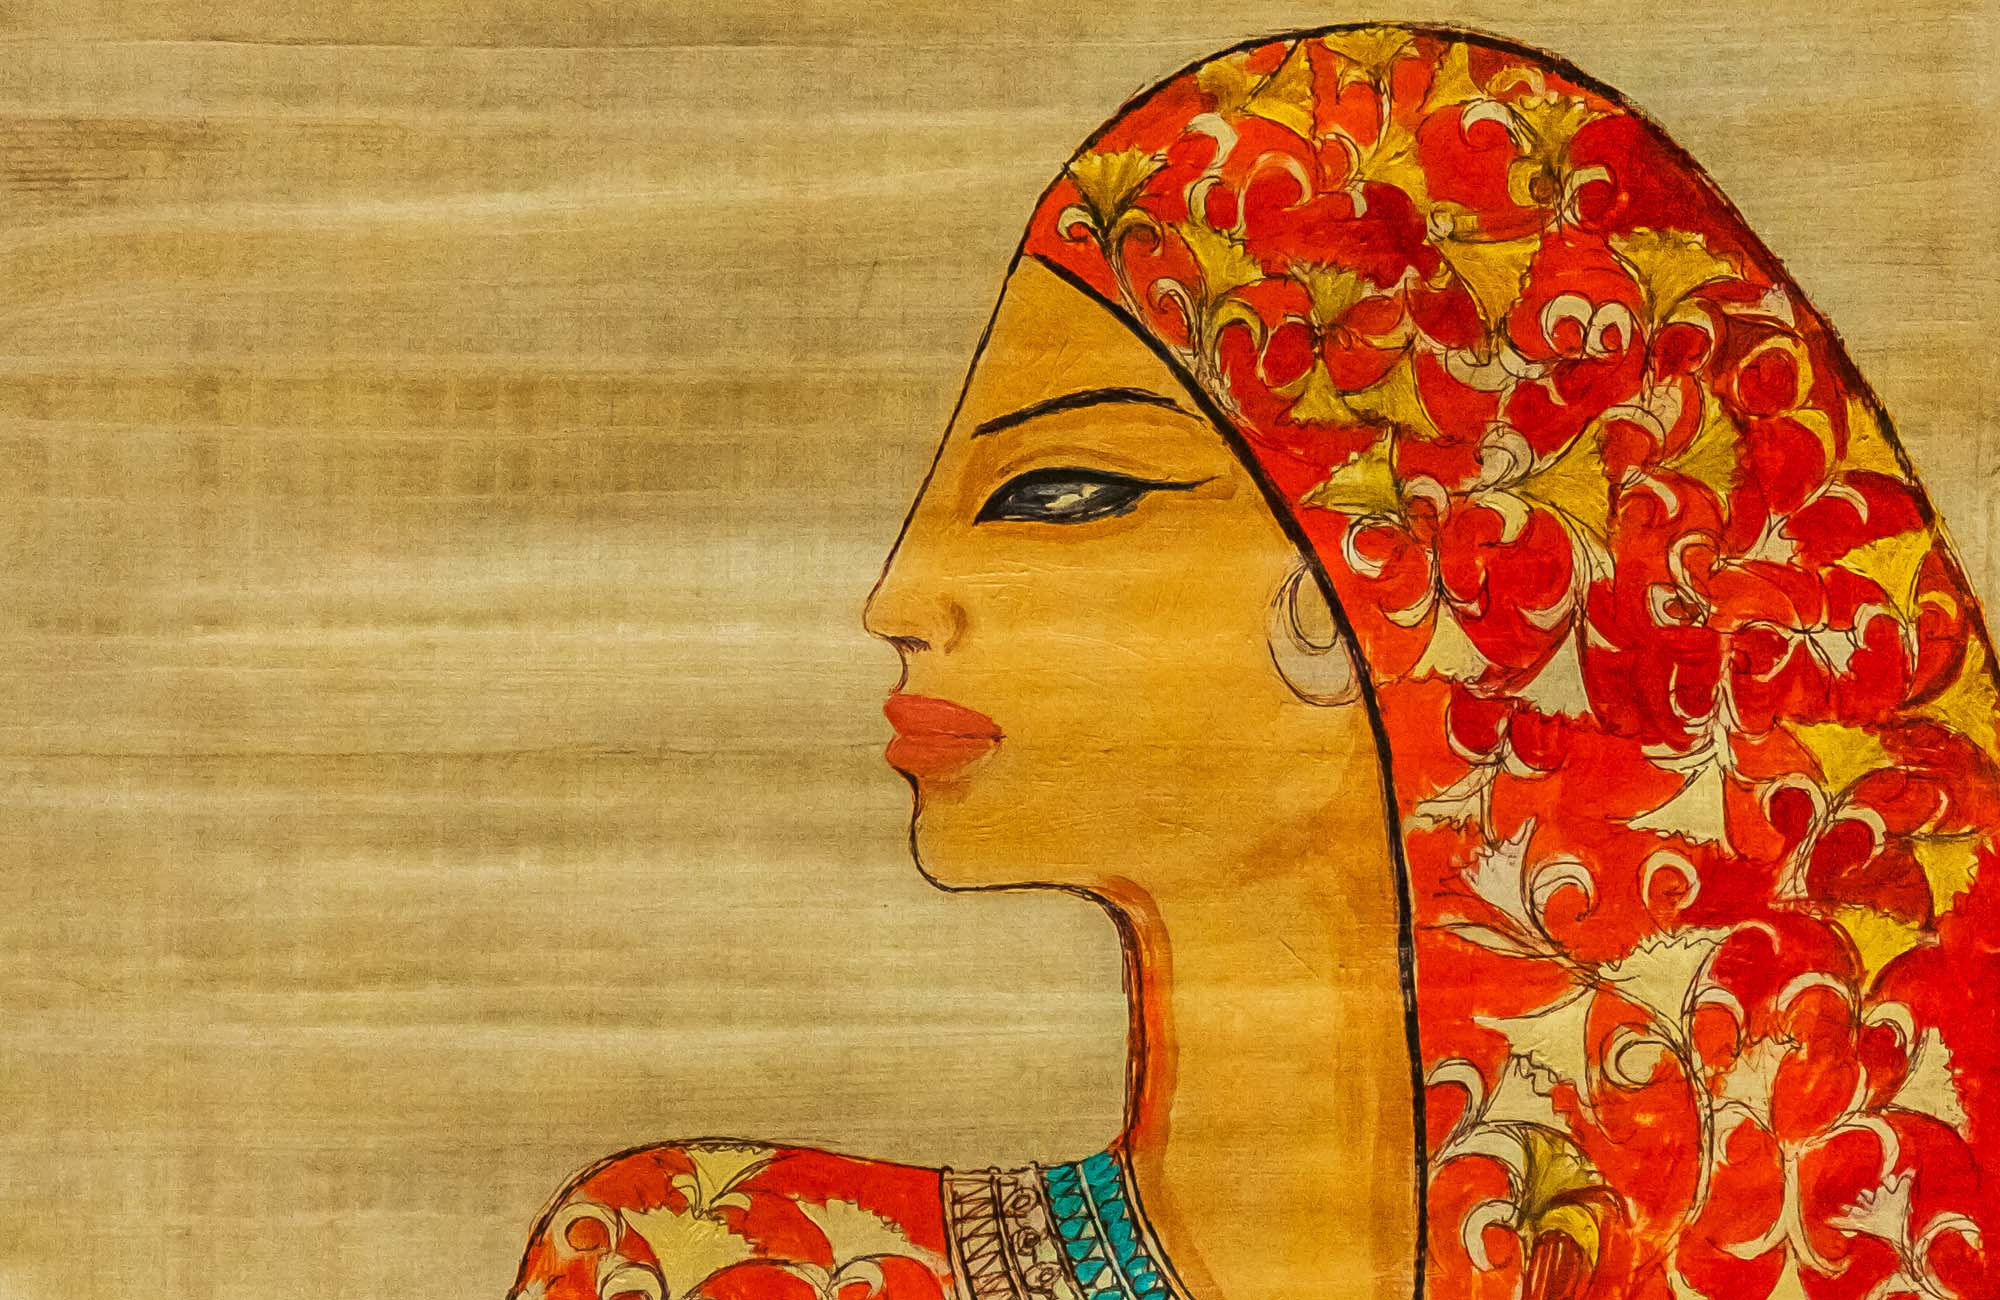 alaa awad - the artist - علاء عوض - painting on Papyrus